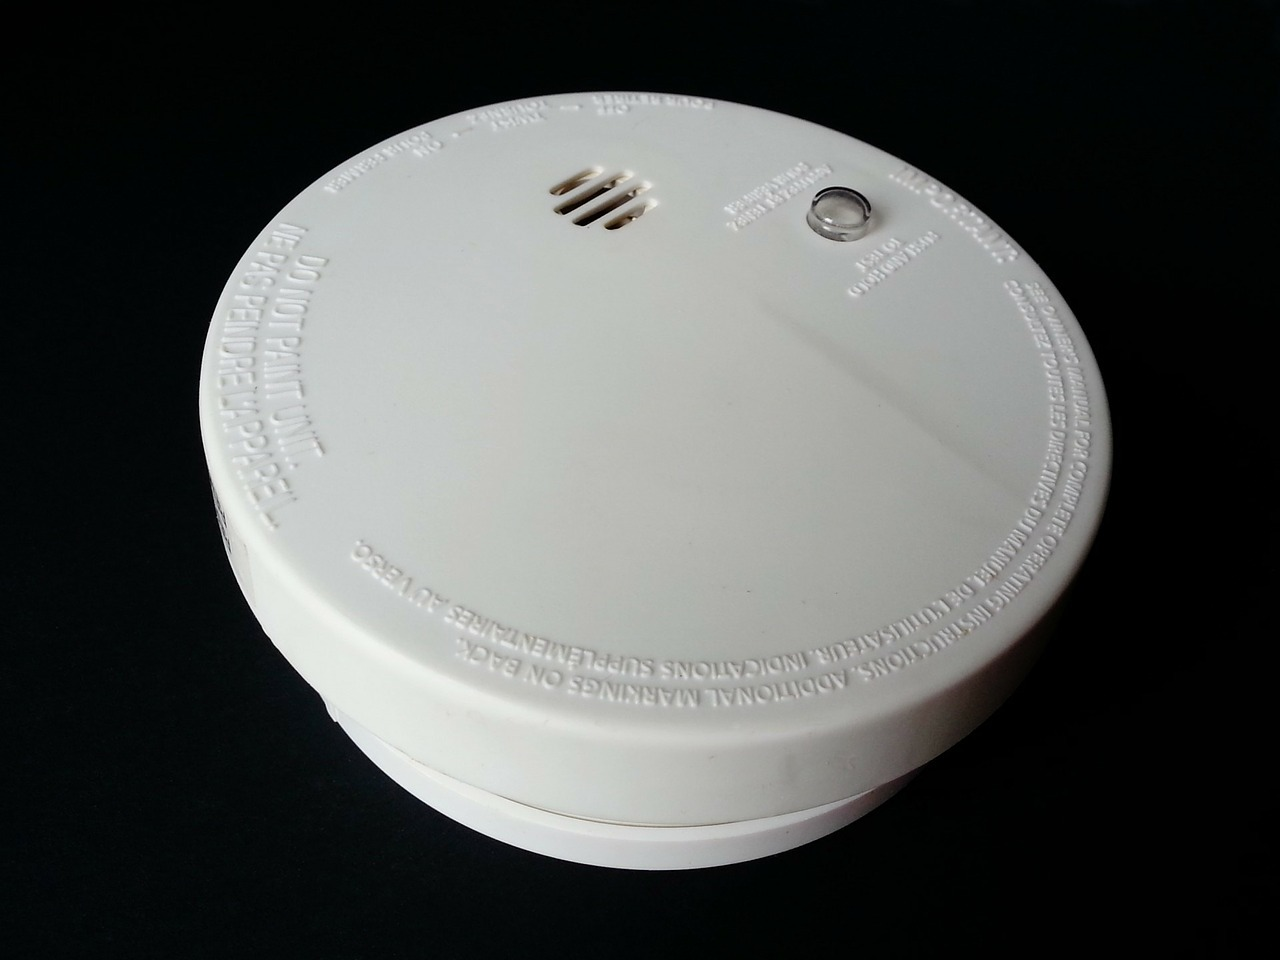 make sure your smoke alarm is connected to your smart house automation system